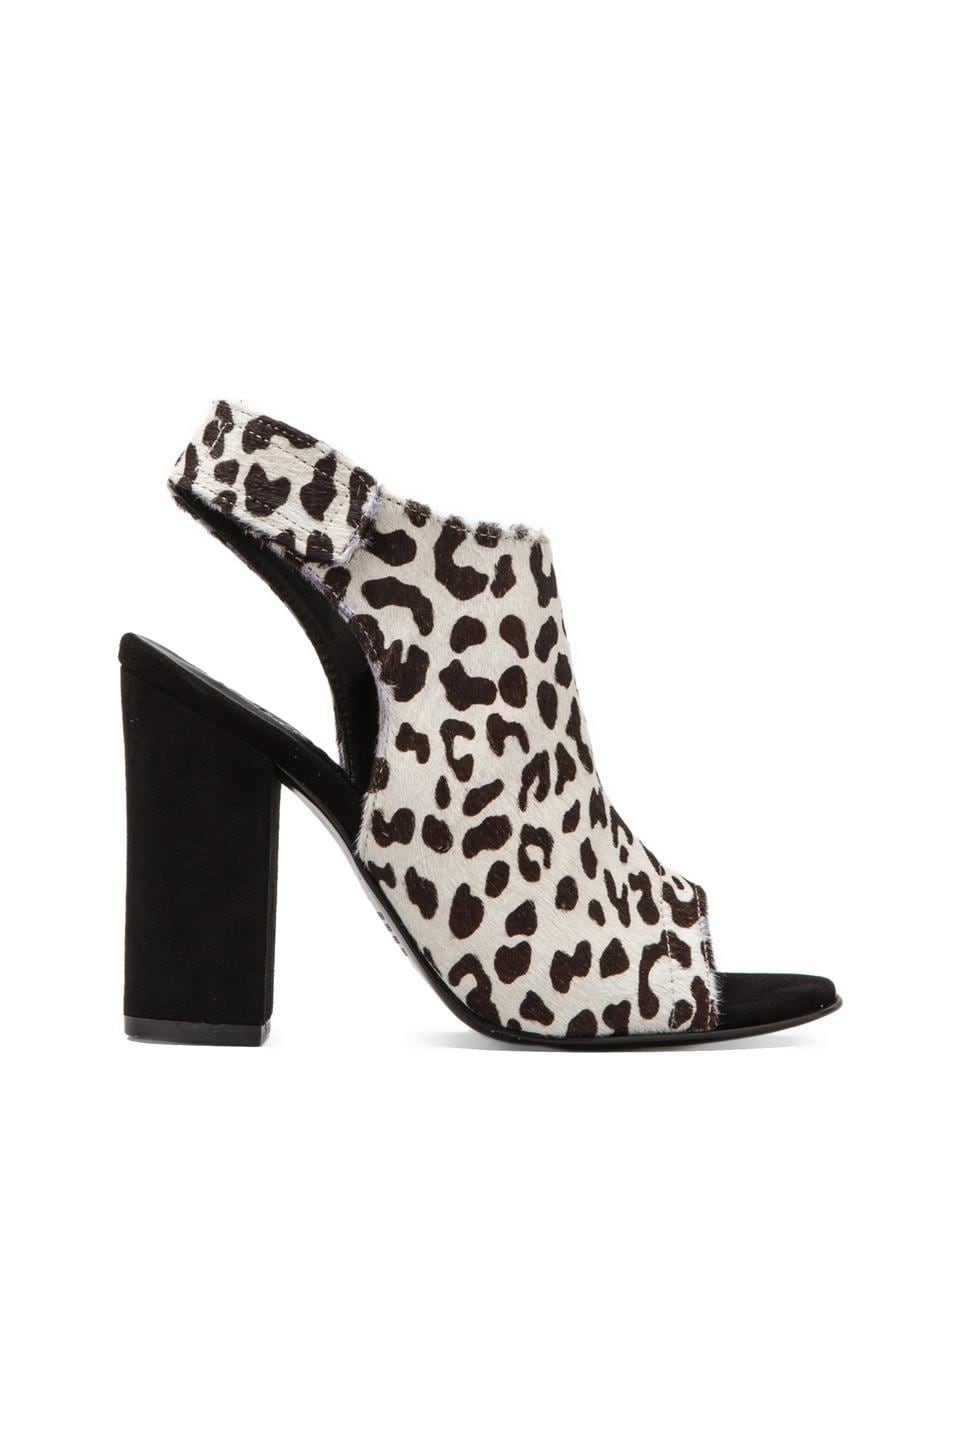 NICHOLAS Kalla Bootie with Calf Fur in Black/White Leopard